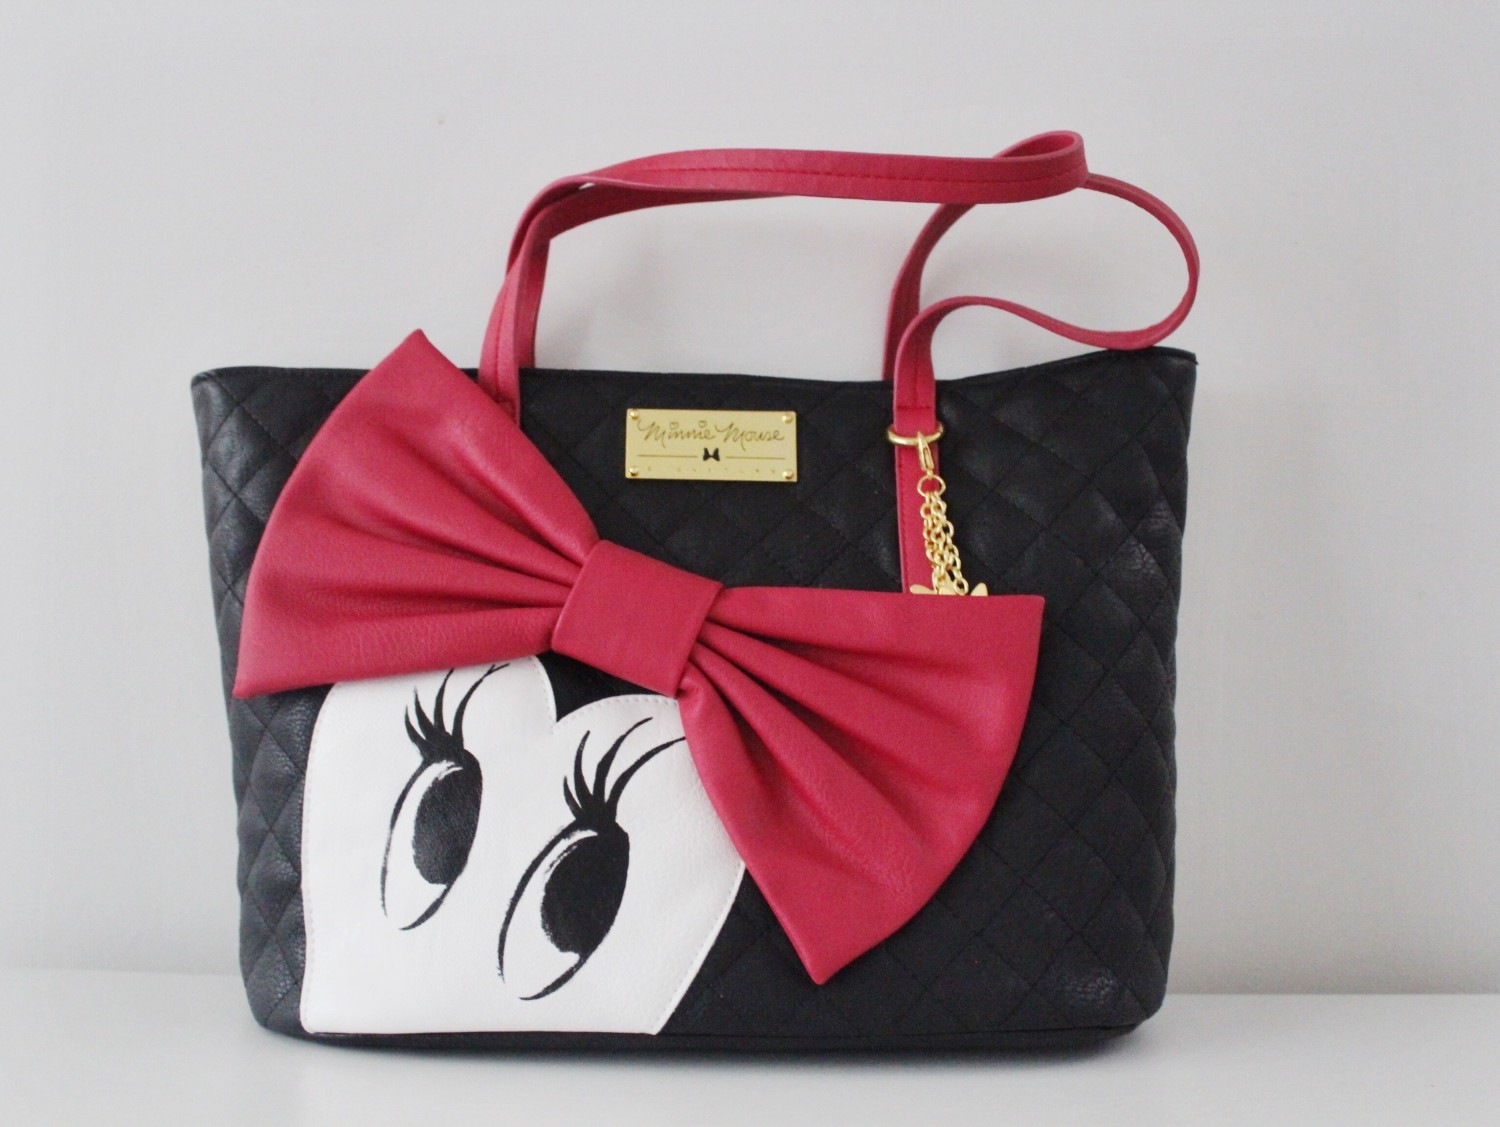 Minnie Mouse Signature Handbag